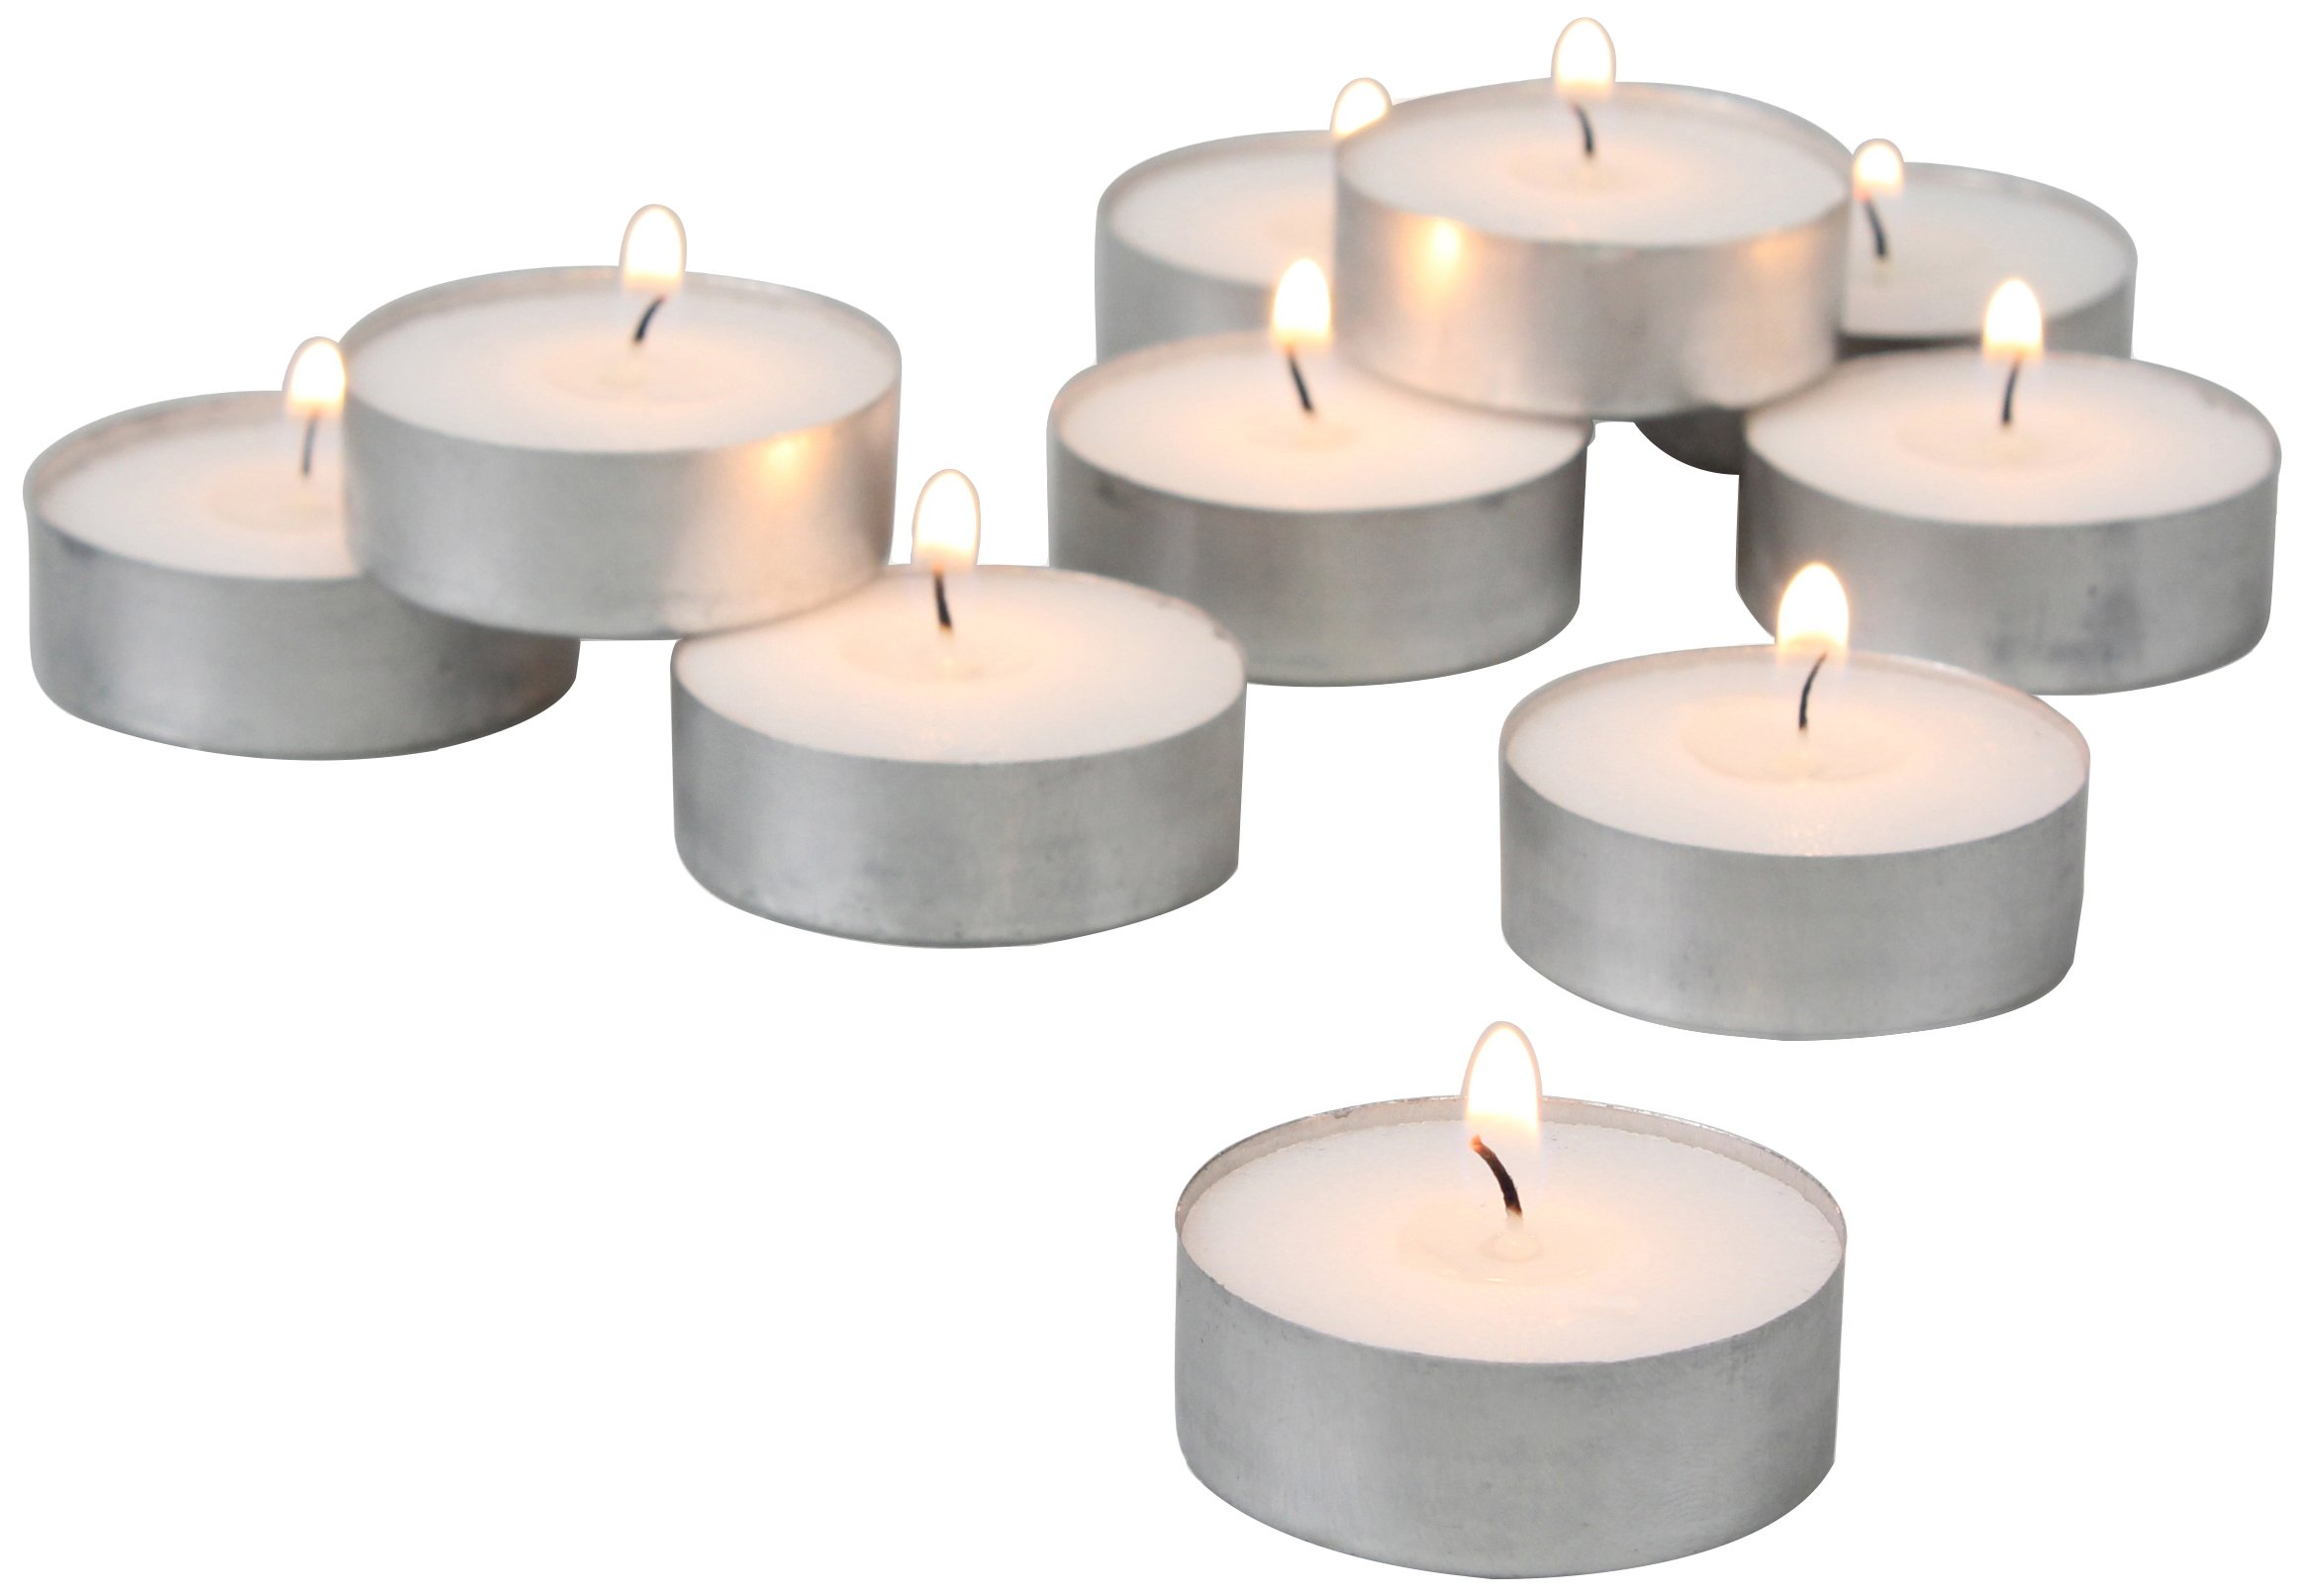 Stonebriar 4 Hour White Unscented Long Burning Tea Light Candles, Candle Accessories Birthdays, Weddings, Spas Everyday Home Decor, Bulk 150 Pack by Stonebriar